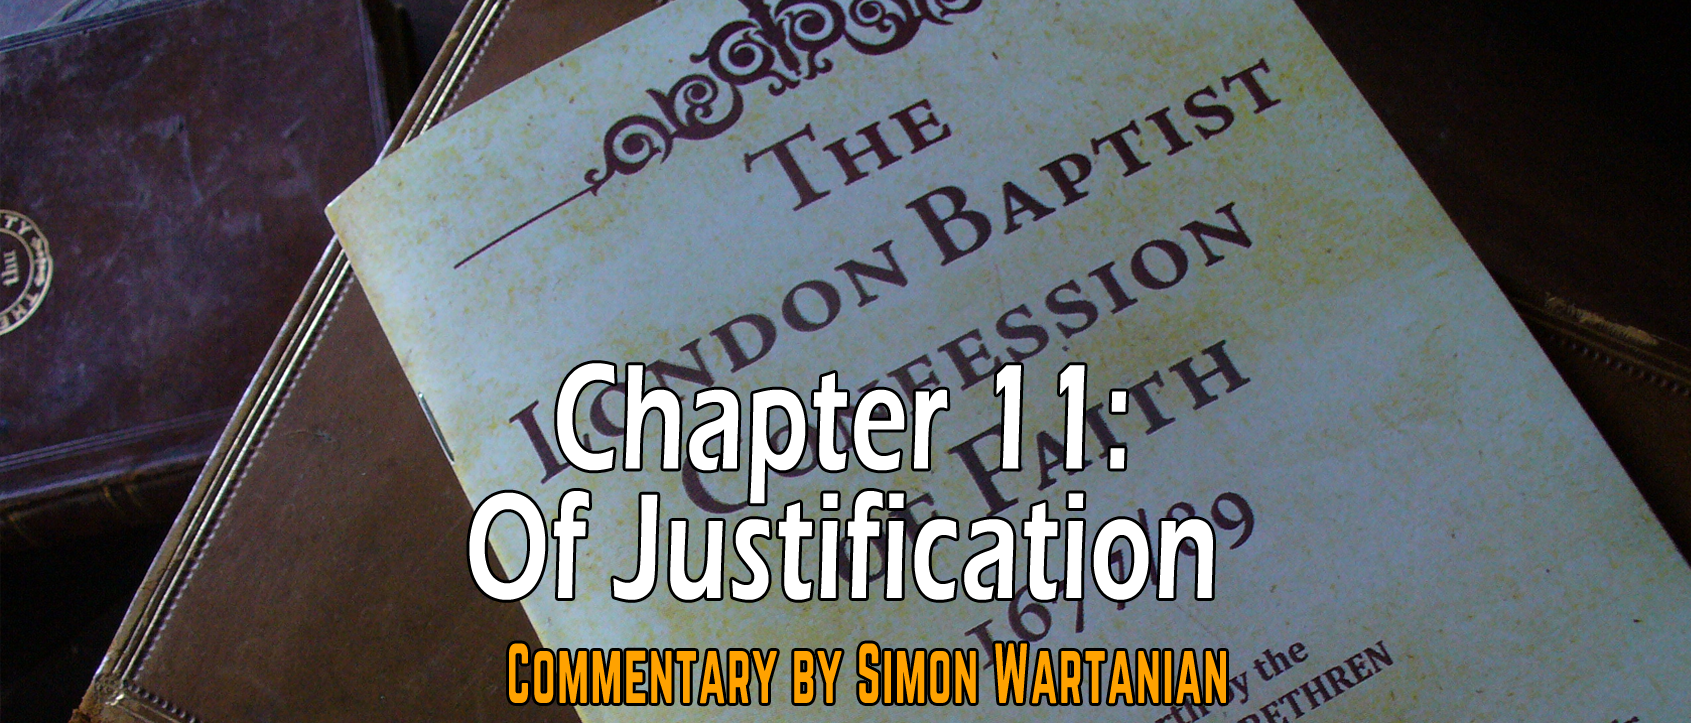 1689 Baptist Confession Chapter 11: Of Justification - Commentary